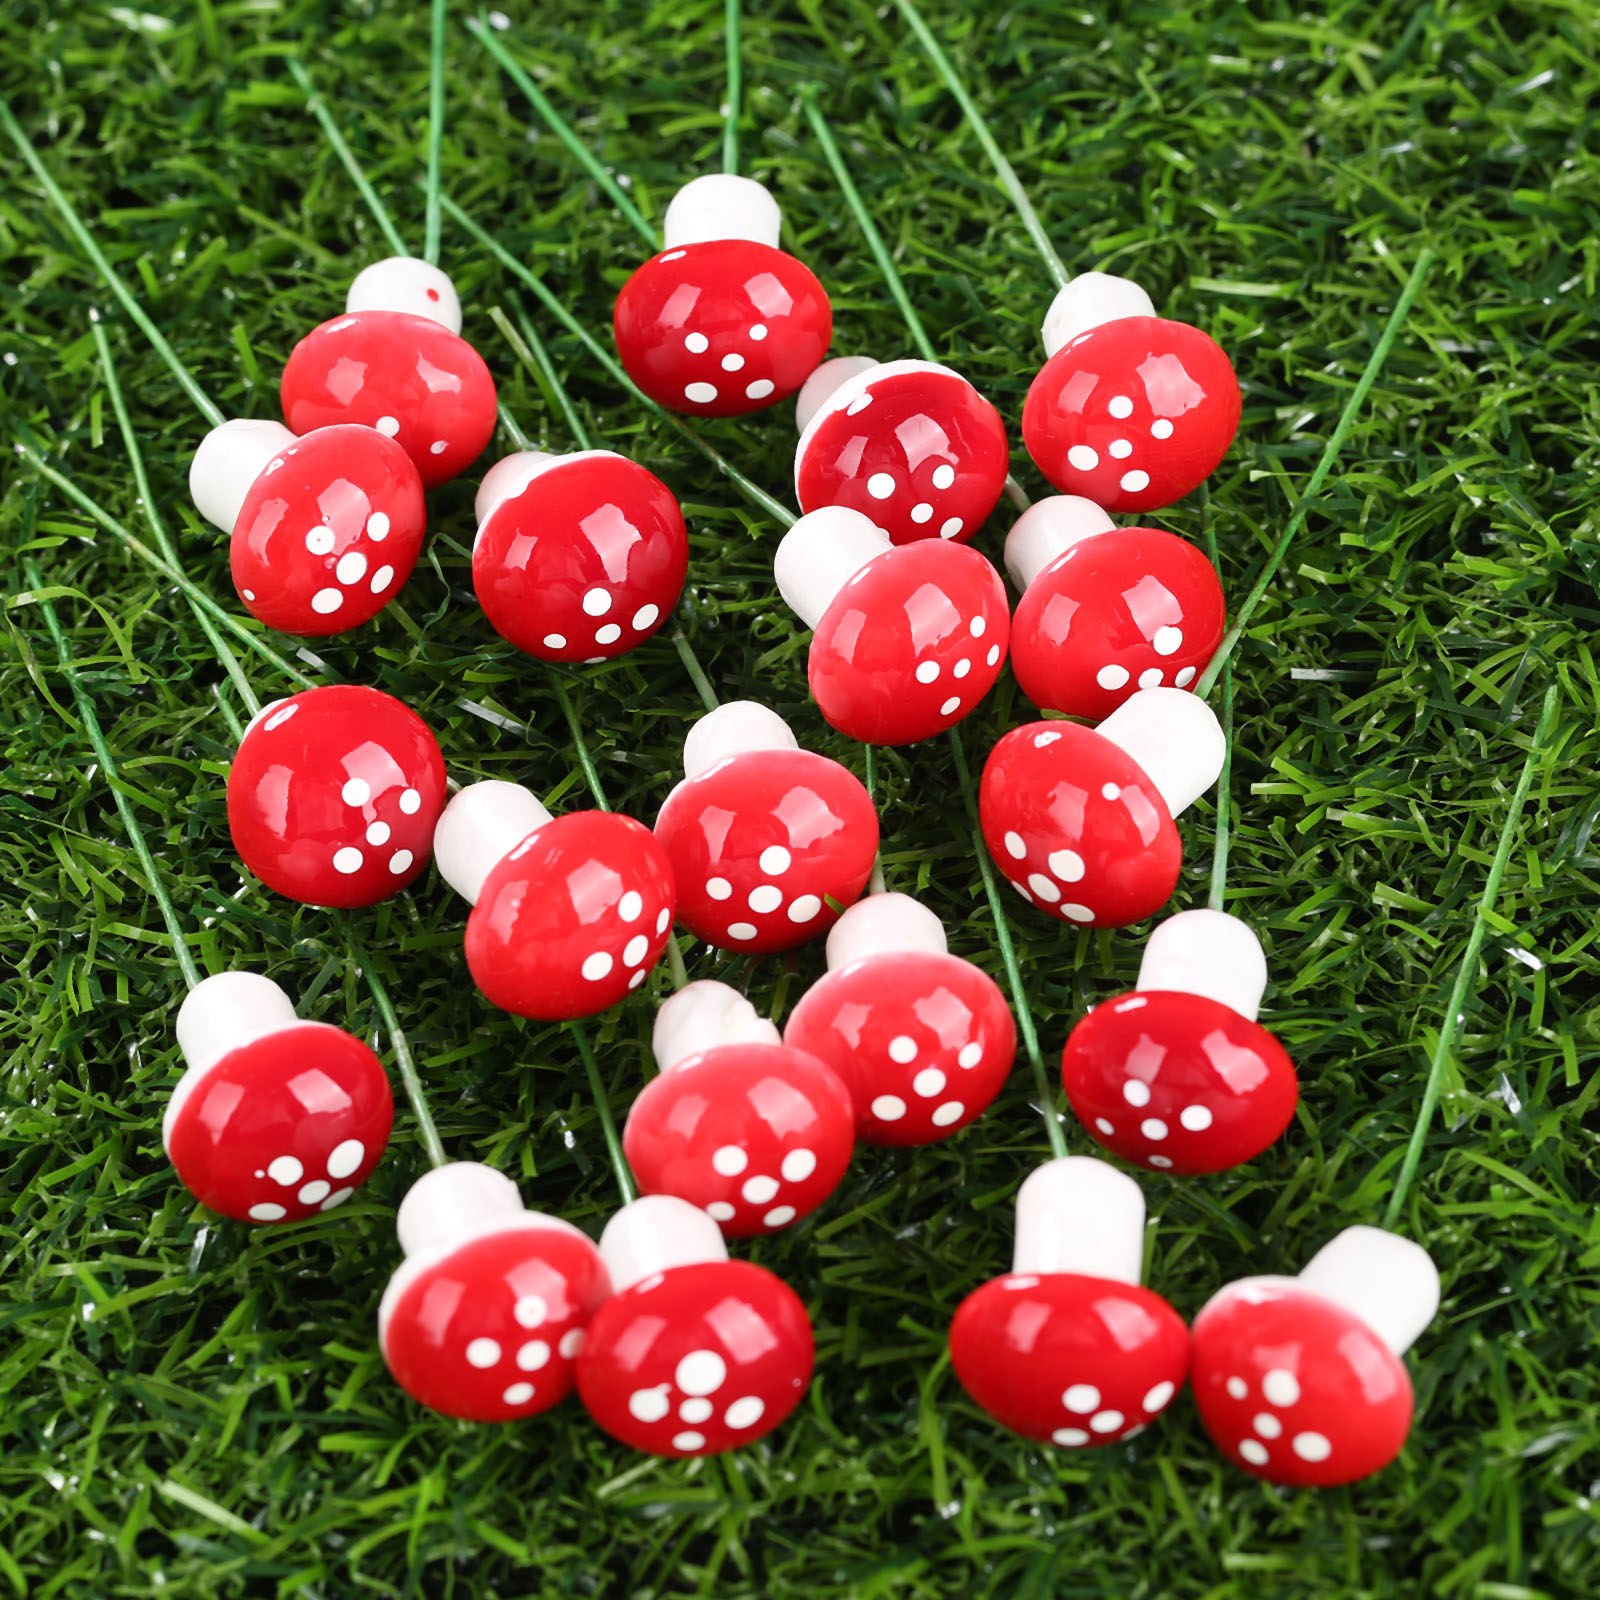 20Pcs Red Multi-colored Foam Mushrooms Miniatures For Fairy Garden DIY Bottle Landscape Decorative Mushroom Figure Decorative